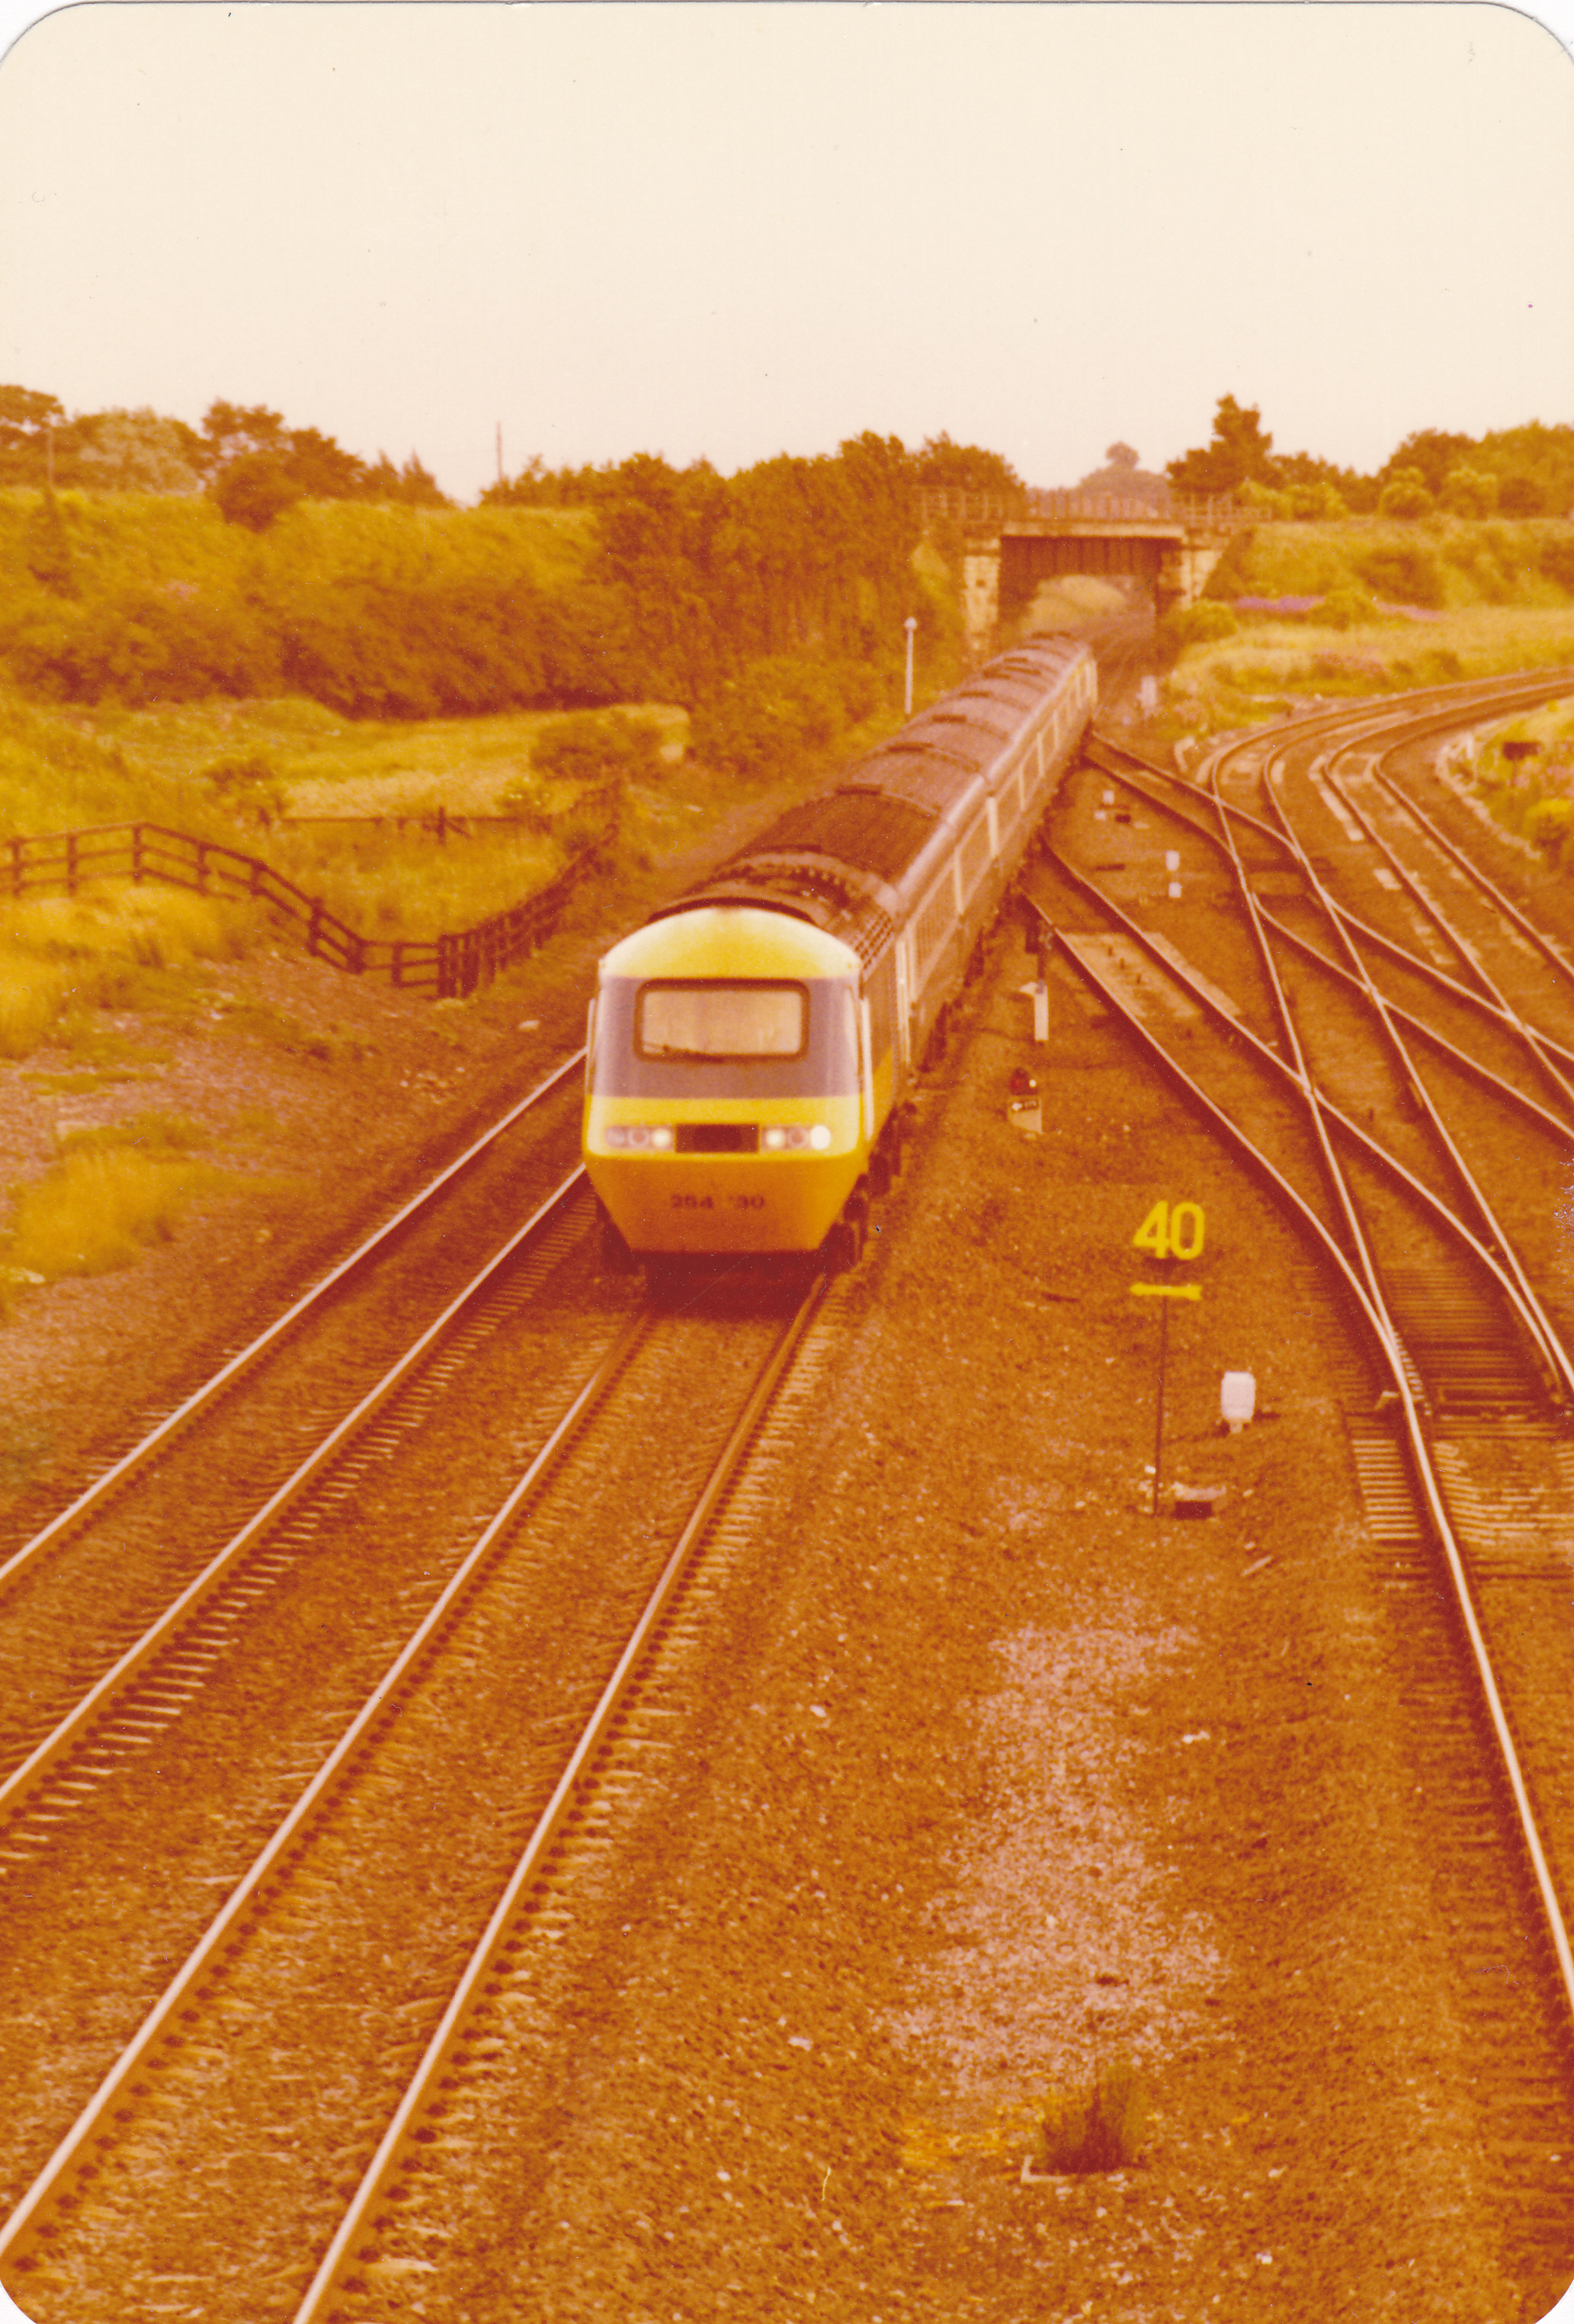 An HST passes Ouston Junction in the late 1970s. Photo copyright Colin Brewes